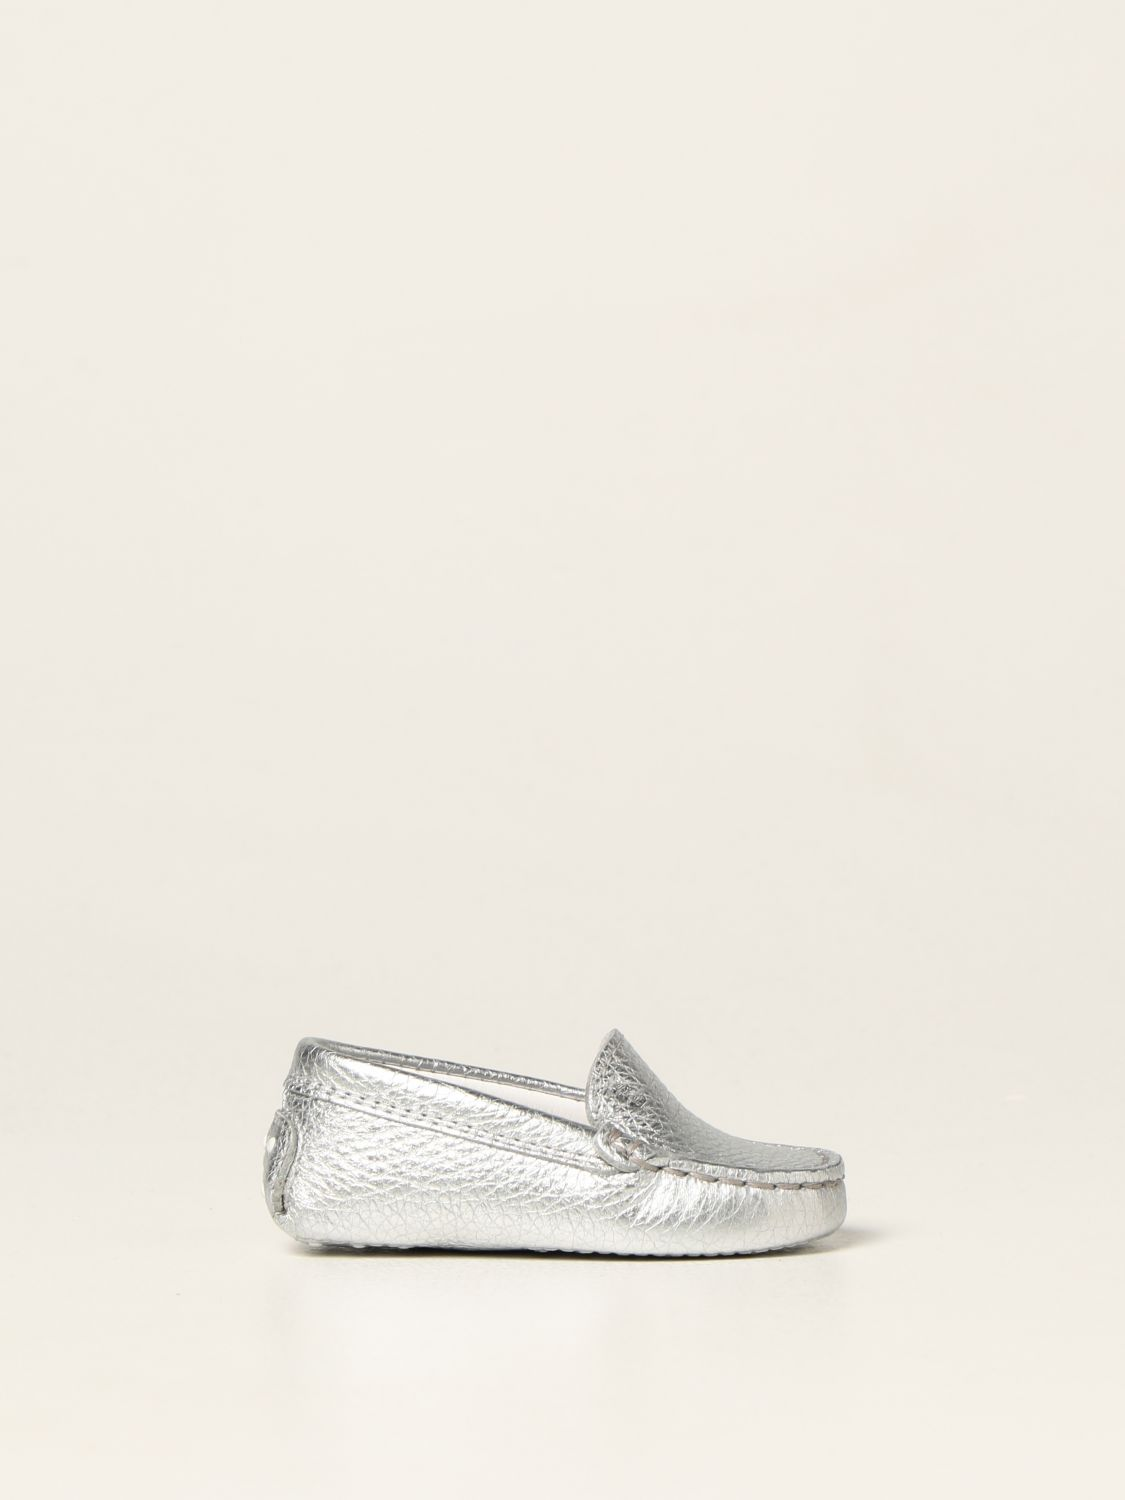 Shoes Tods: Tod's moccasins in laminated leather silver 1